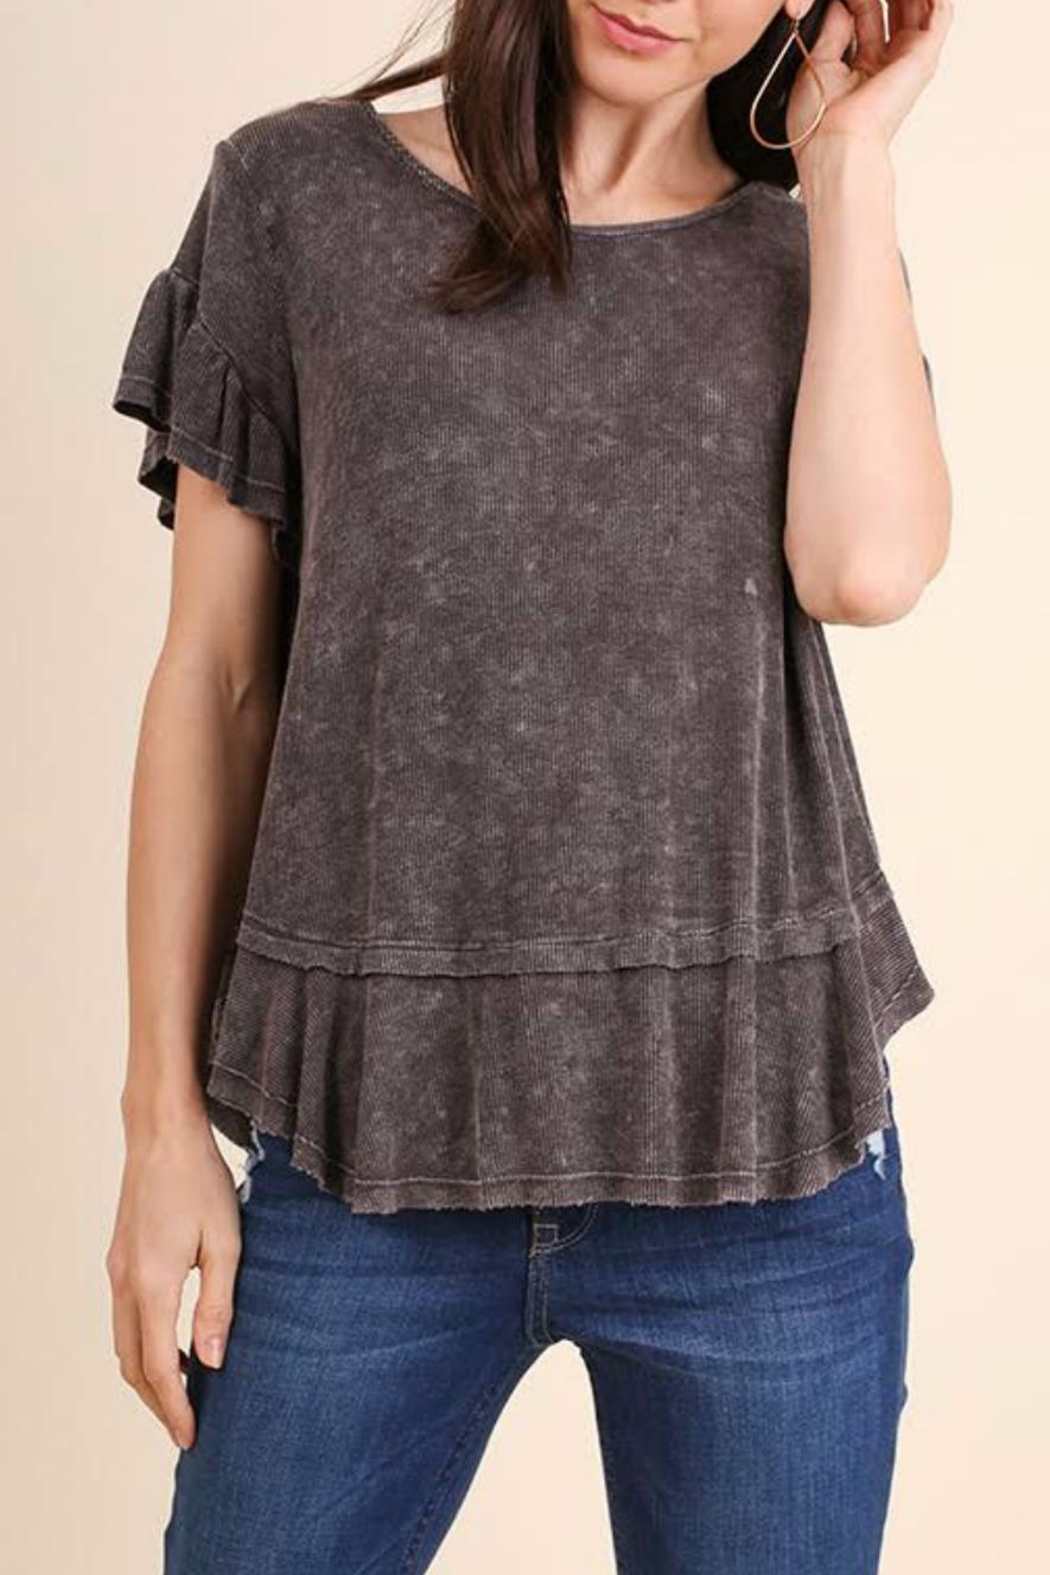 Umgee USA Ruffled Short Sleeve Top - Main Image